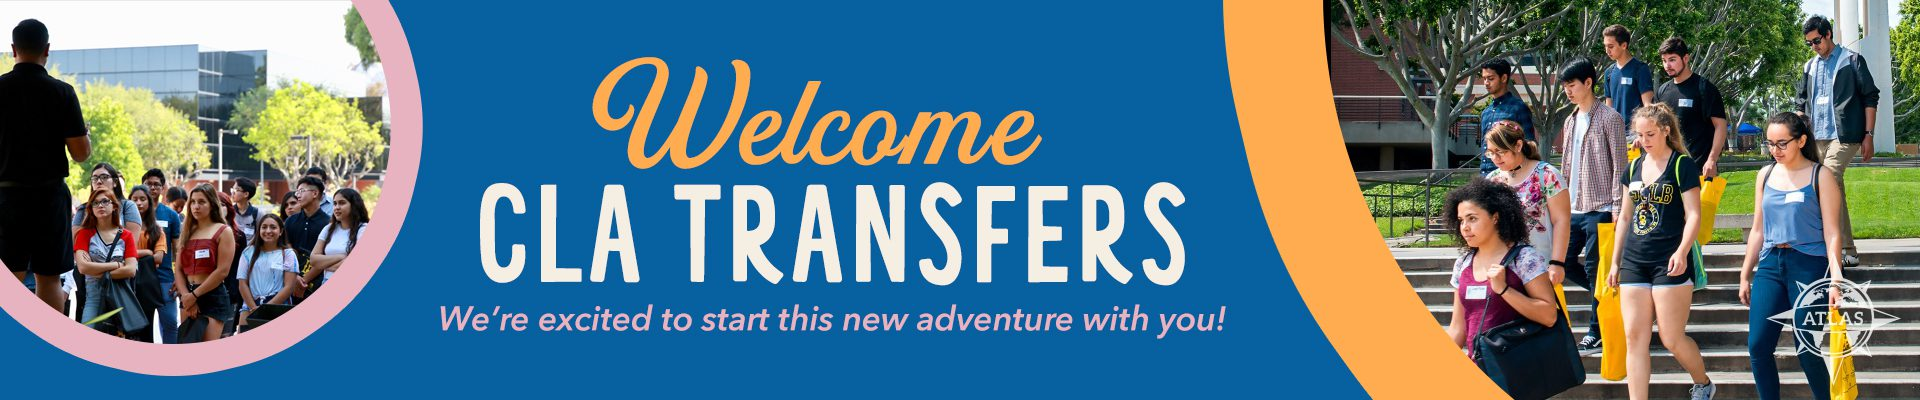 Welcome CLA Transfers